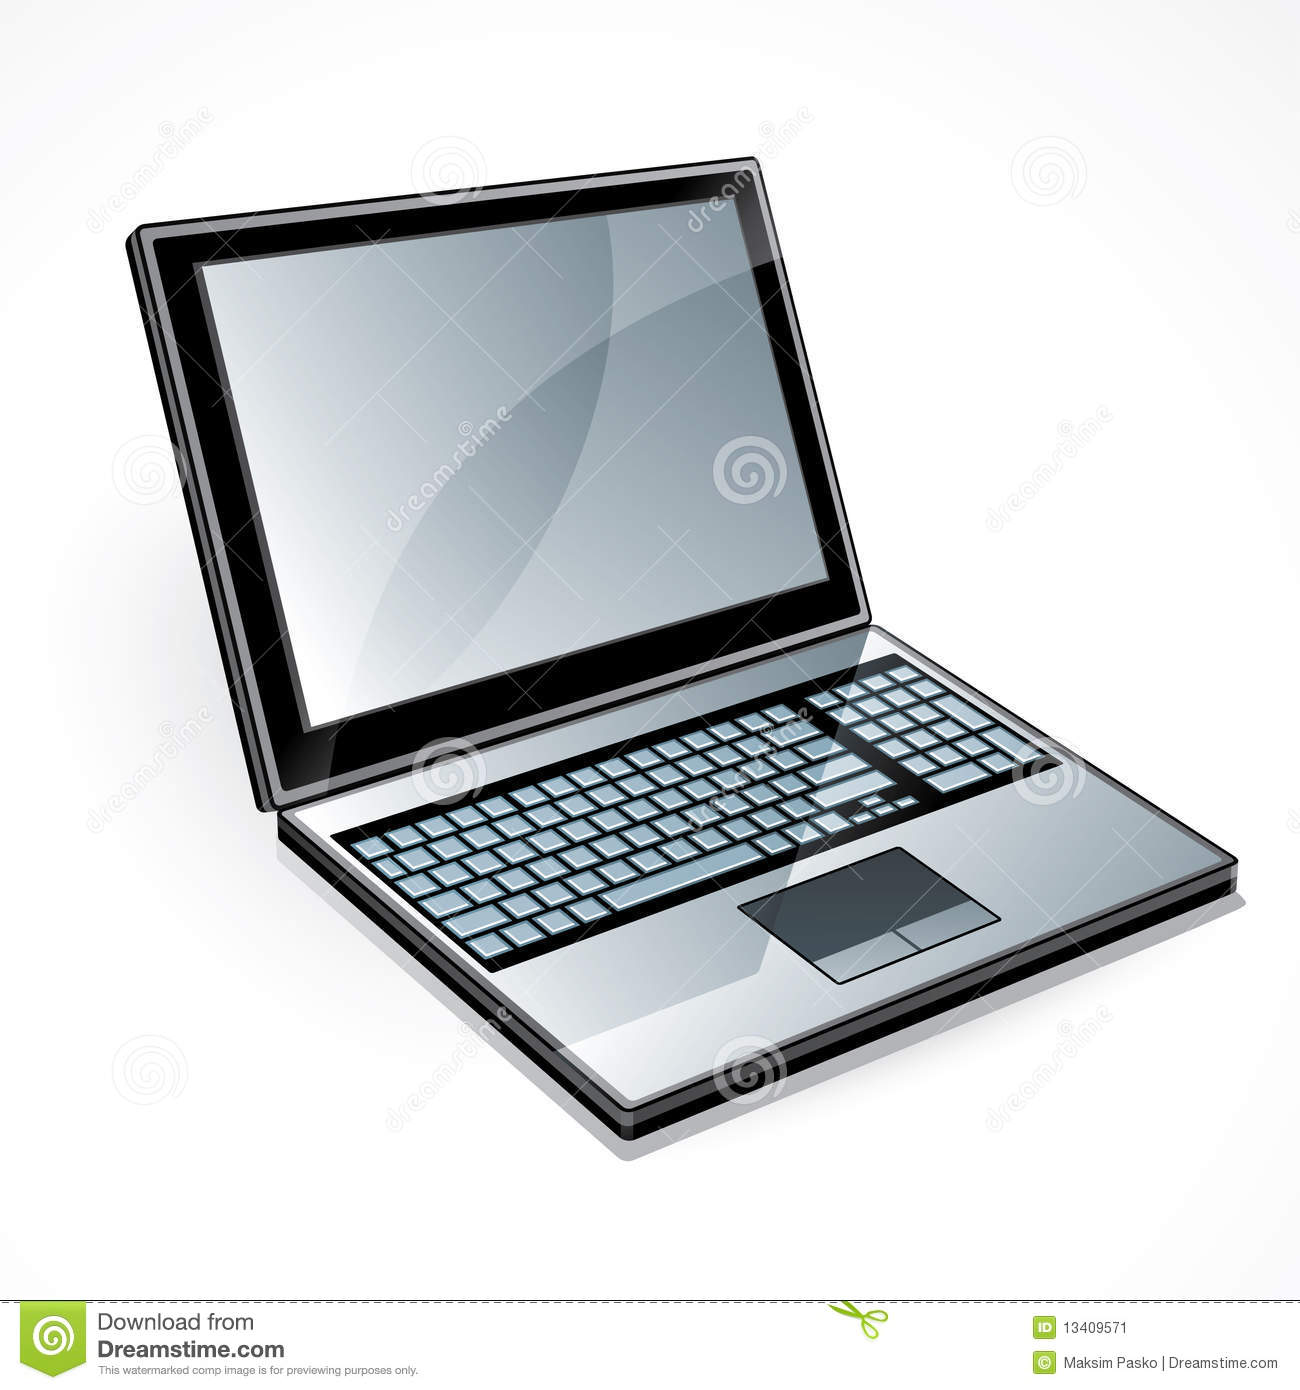 Open laptop computer with blank screen, isolated on white background.